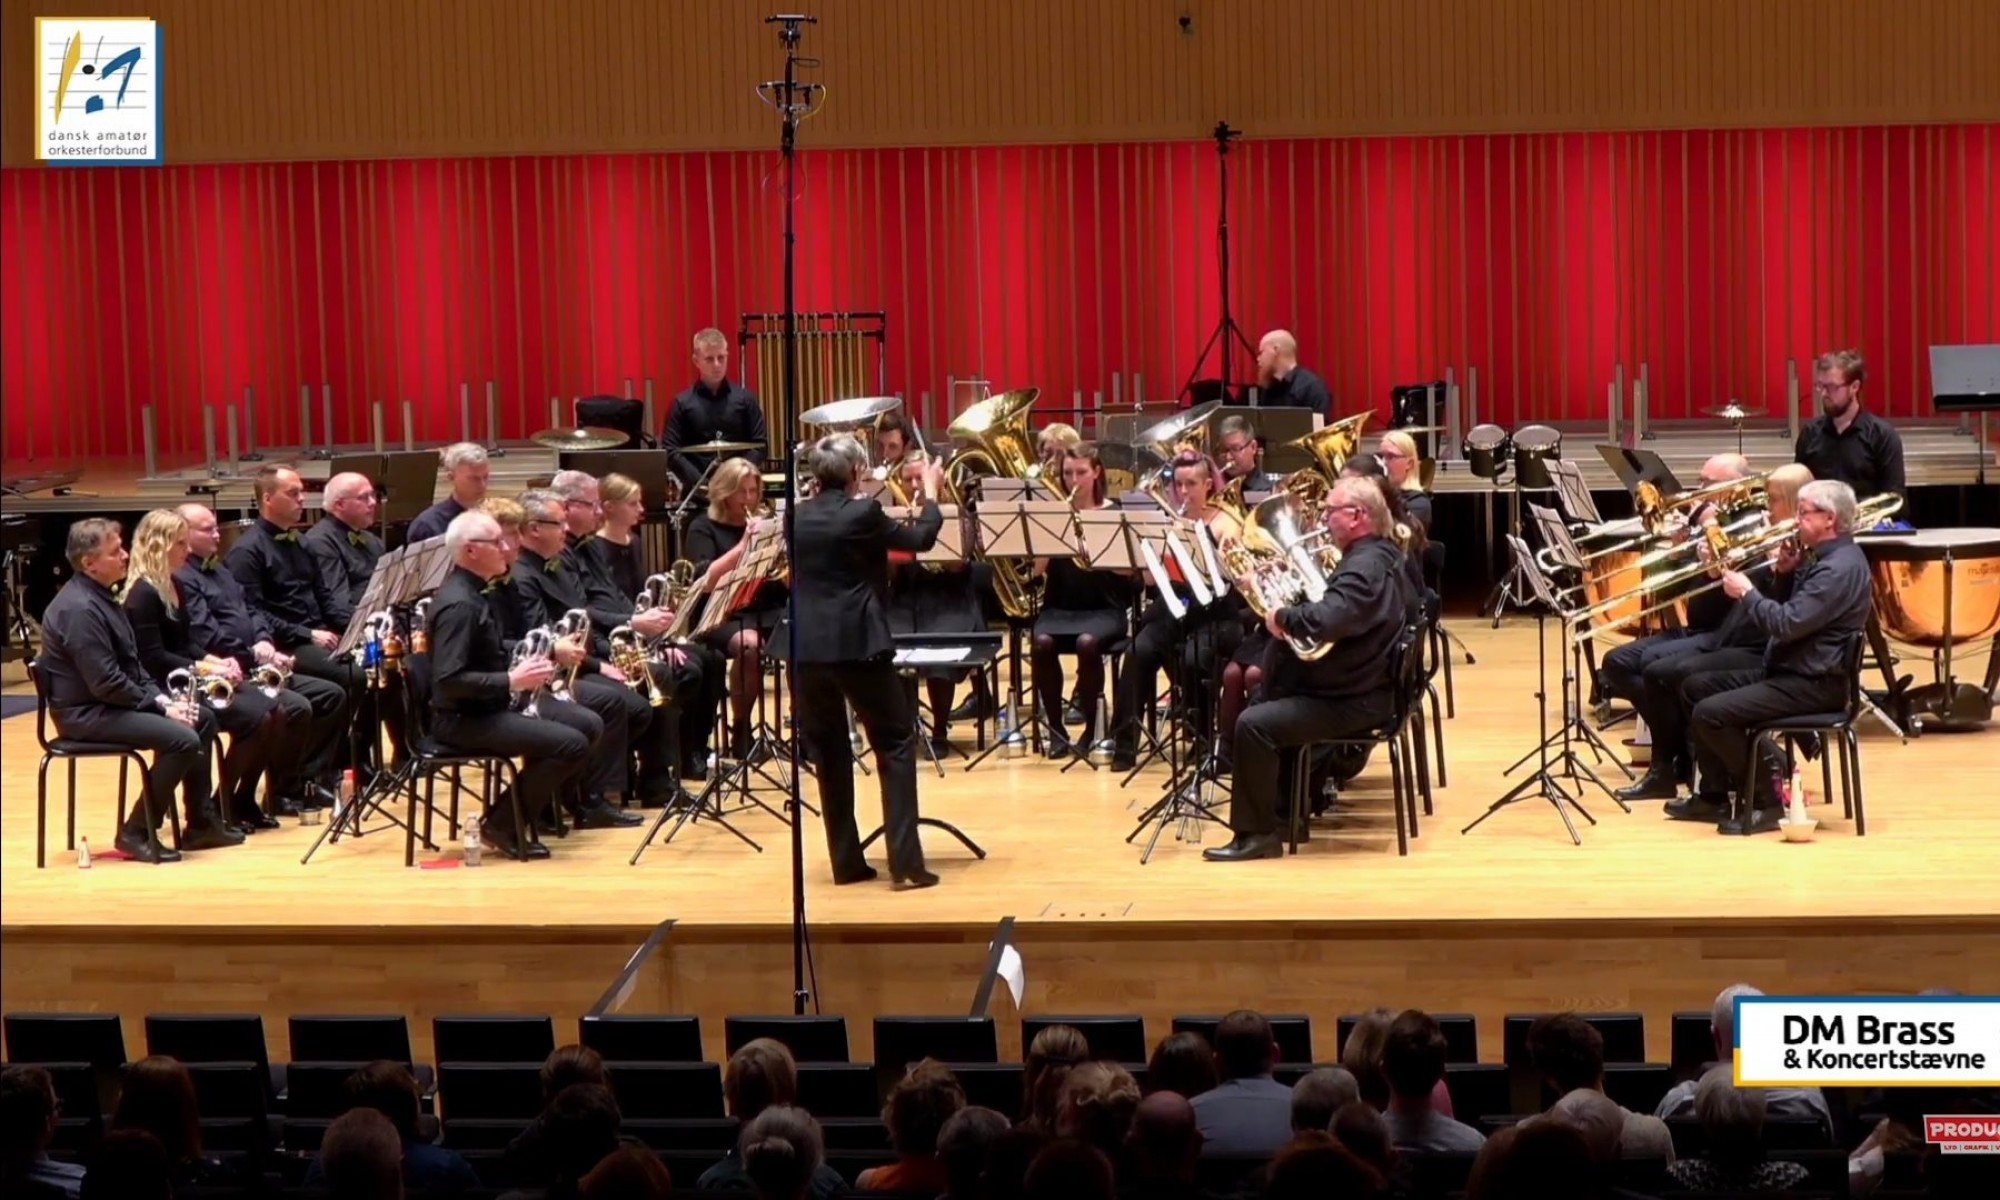 Skanderborg Brass Band